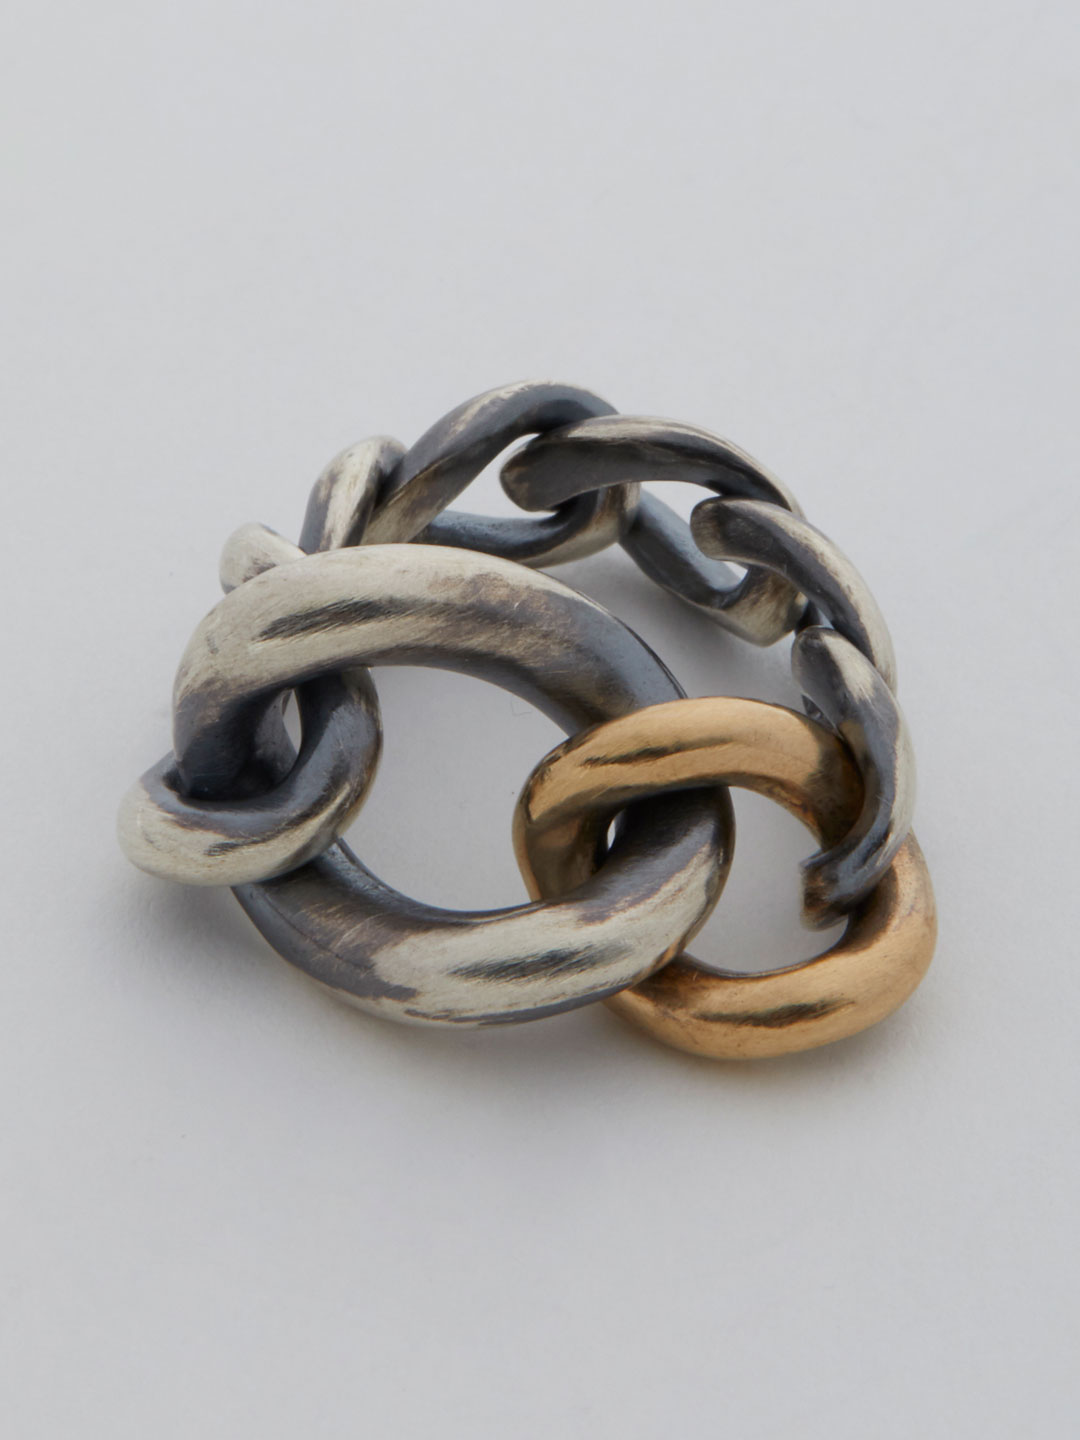 Humete Chain Ring 14 #11  - Silver